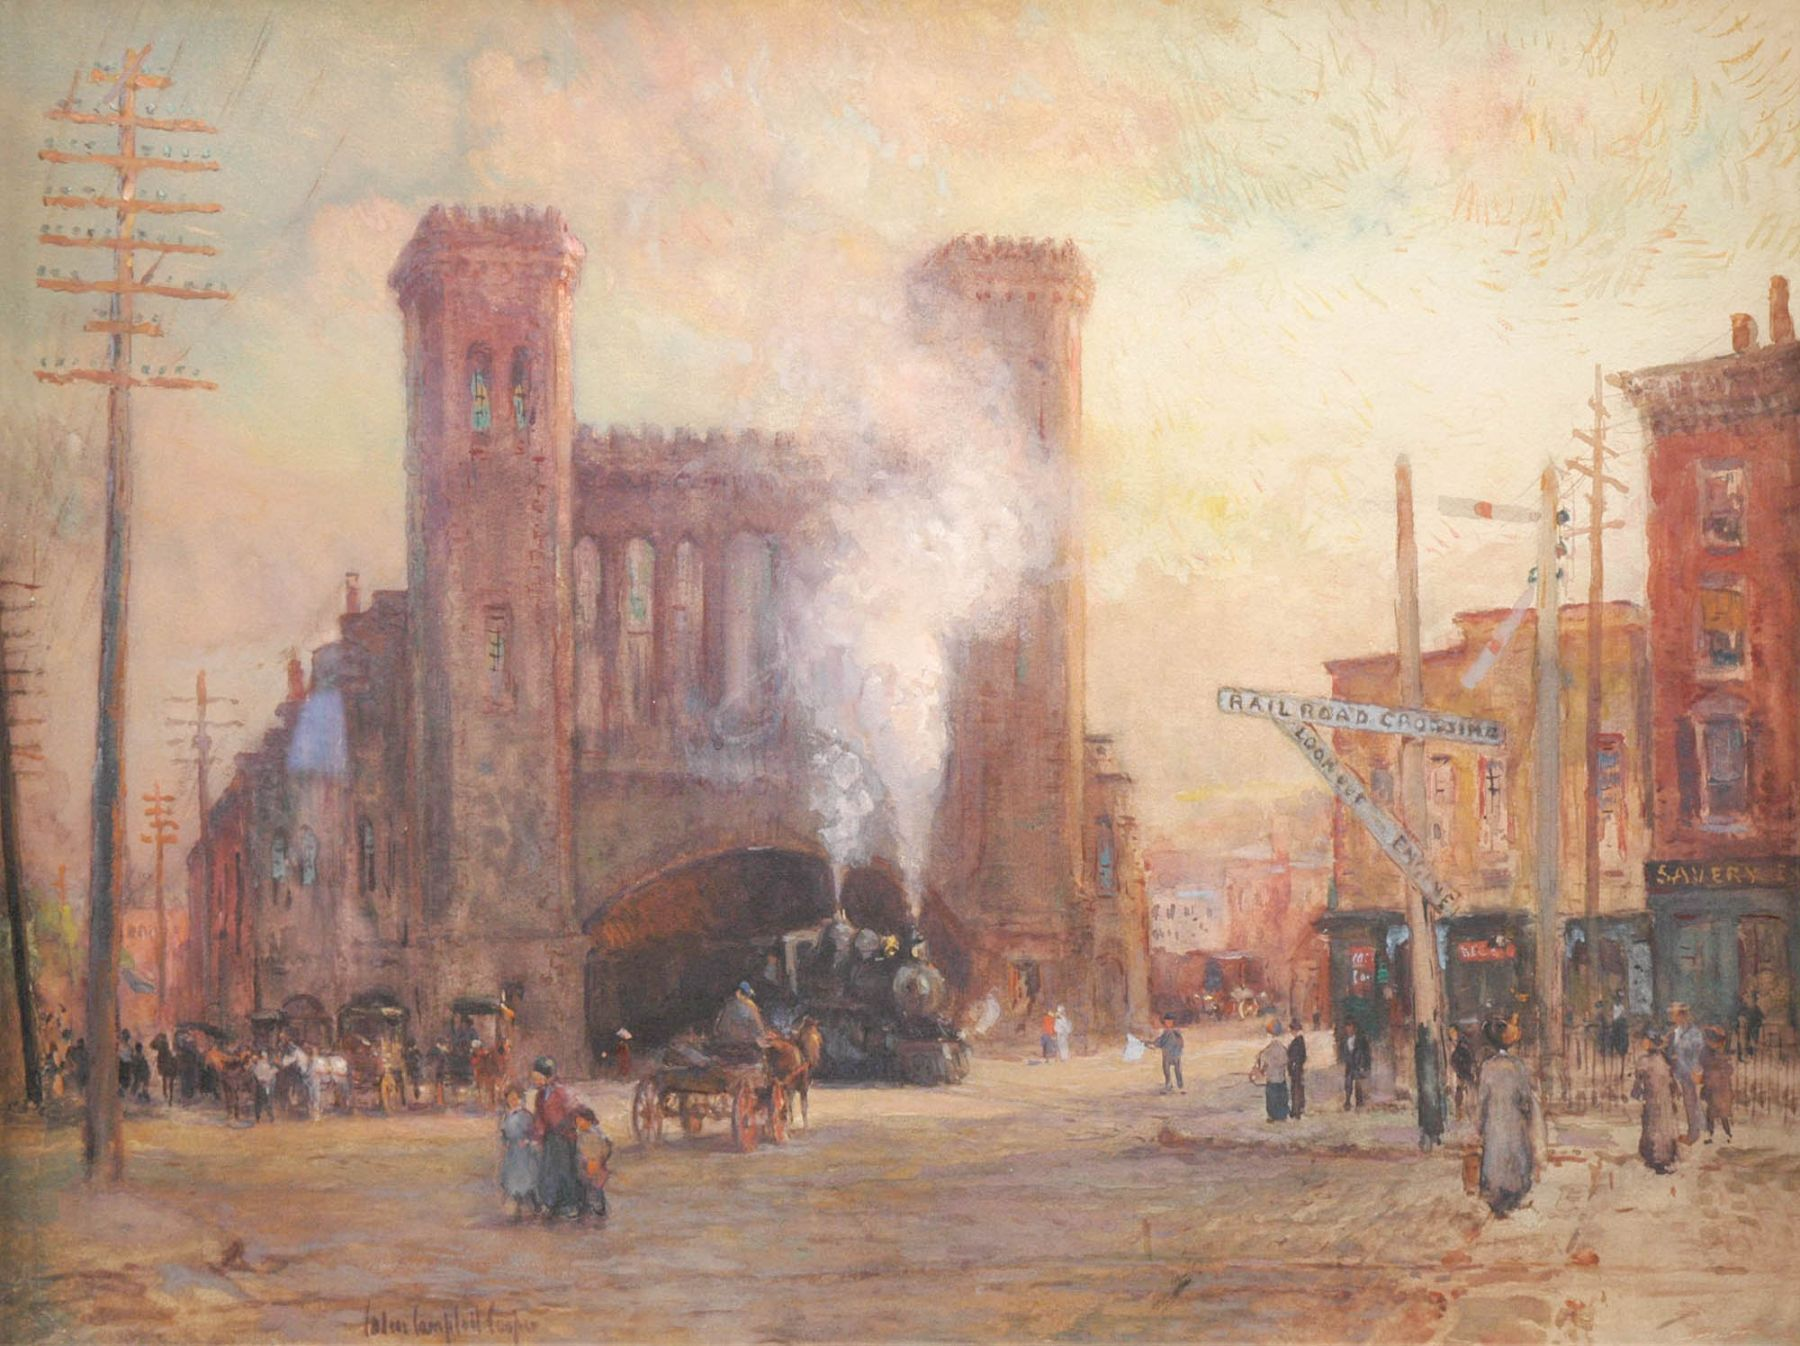 Colin Campbell Cooper, The Train Round House, Salem, Massachusetts, c 1910